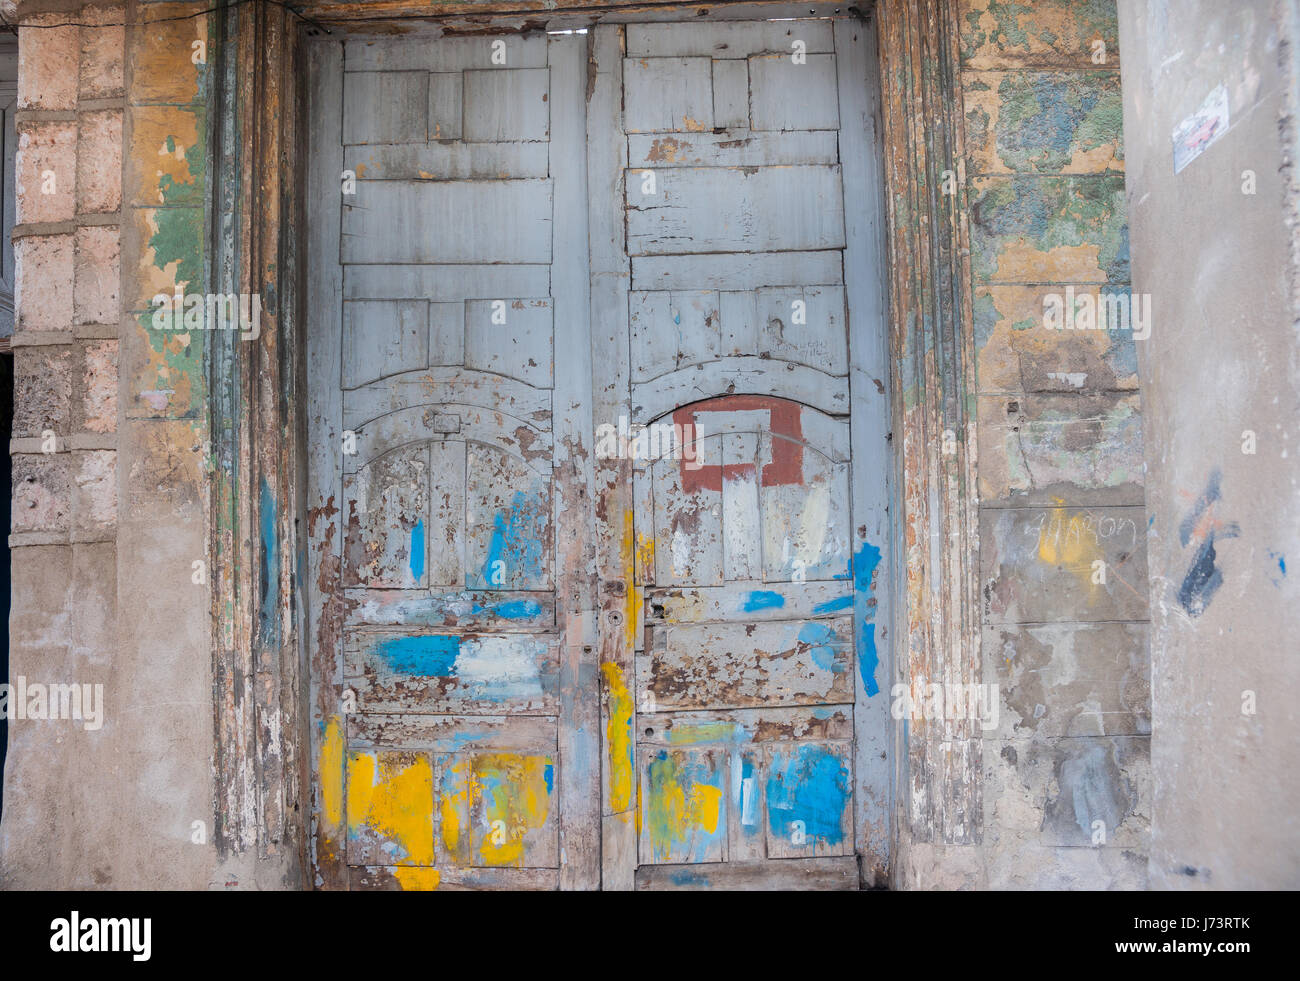 Double closed door seen best of days, daubed in paint, cracked, peeling  weathered and uncared, for in need of repairs - Stock Image